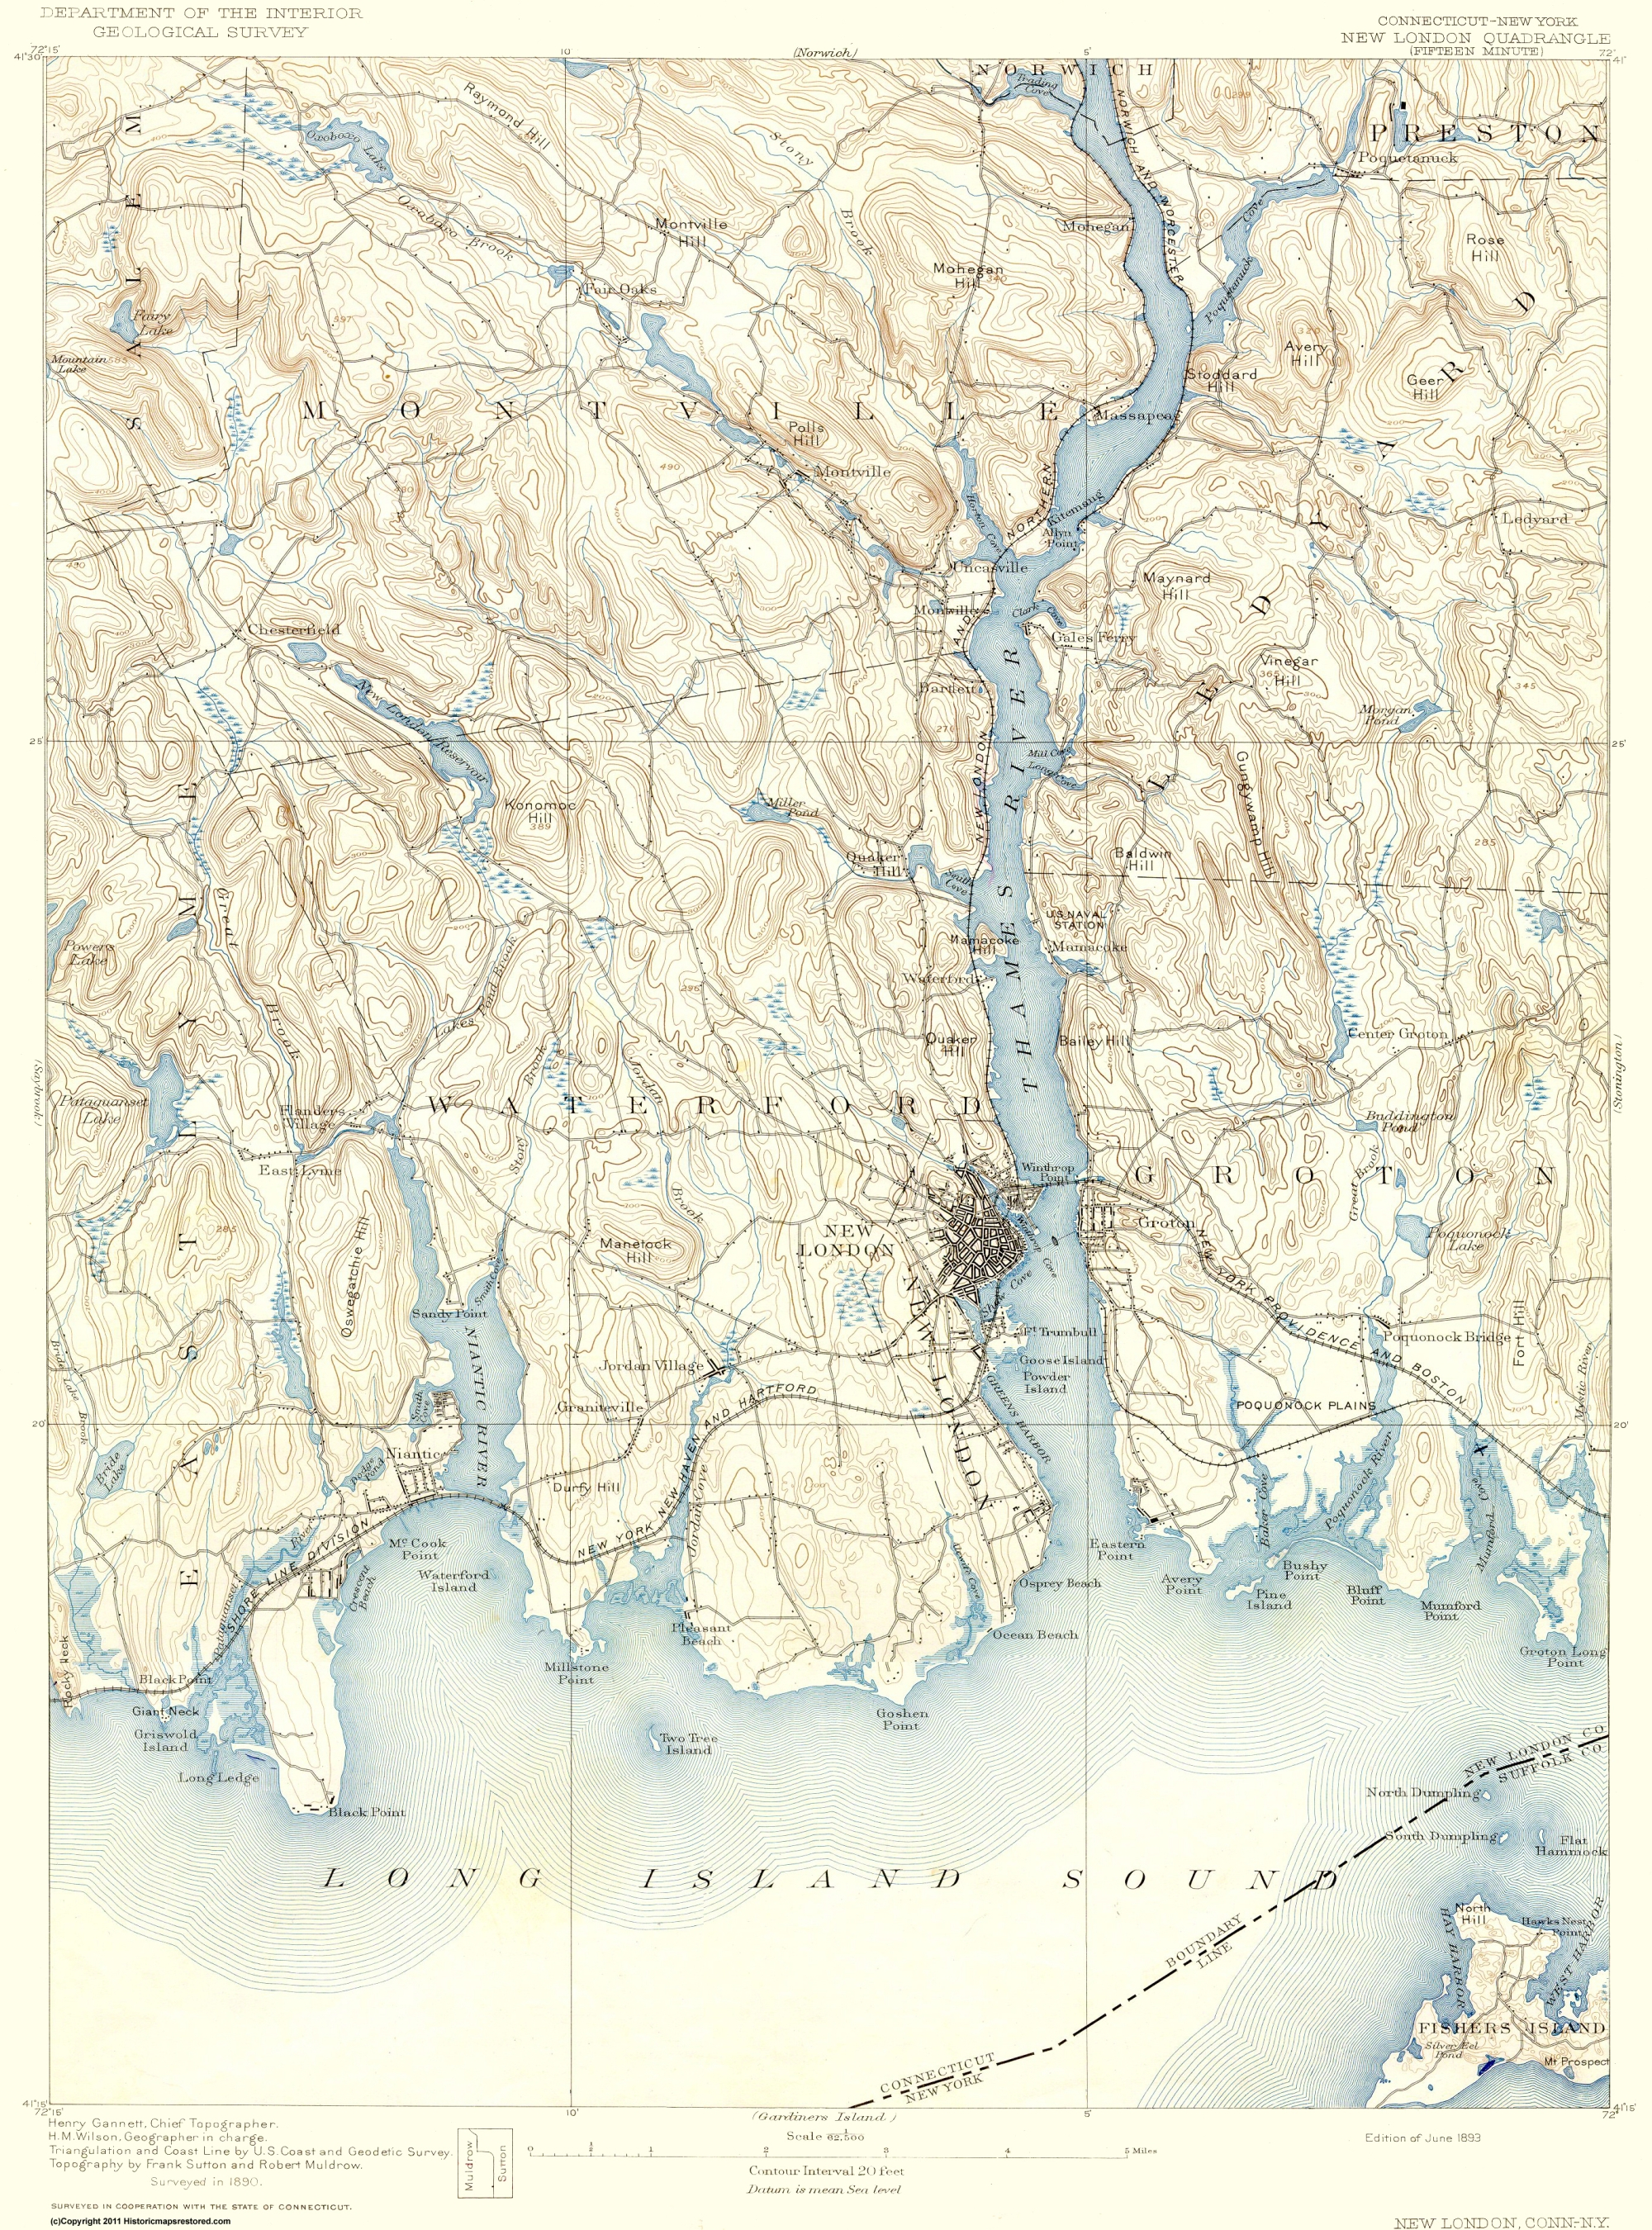 Topographical Map New London Connecticut New York 1893